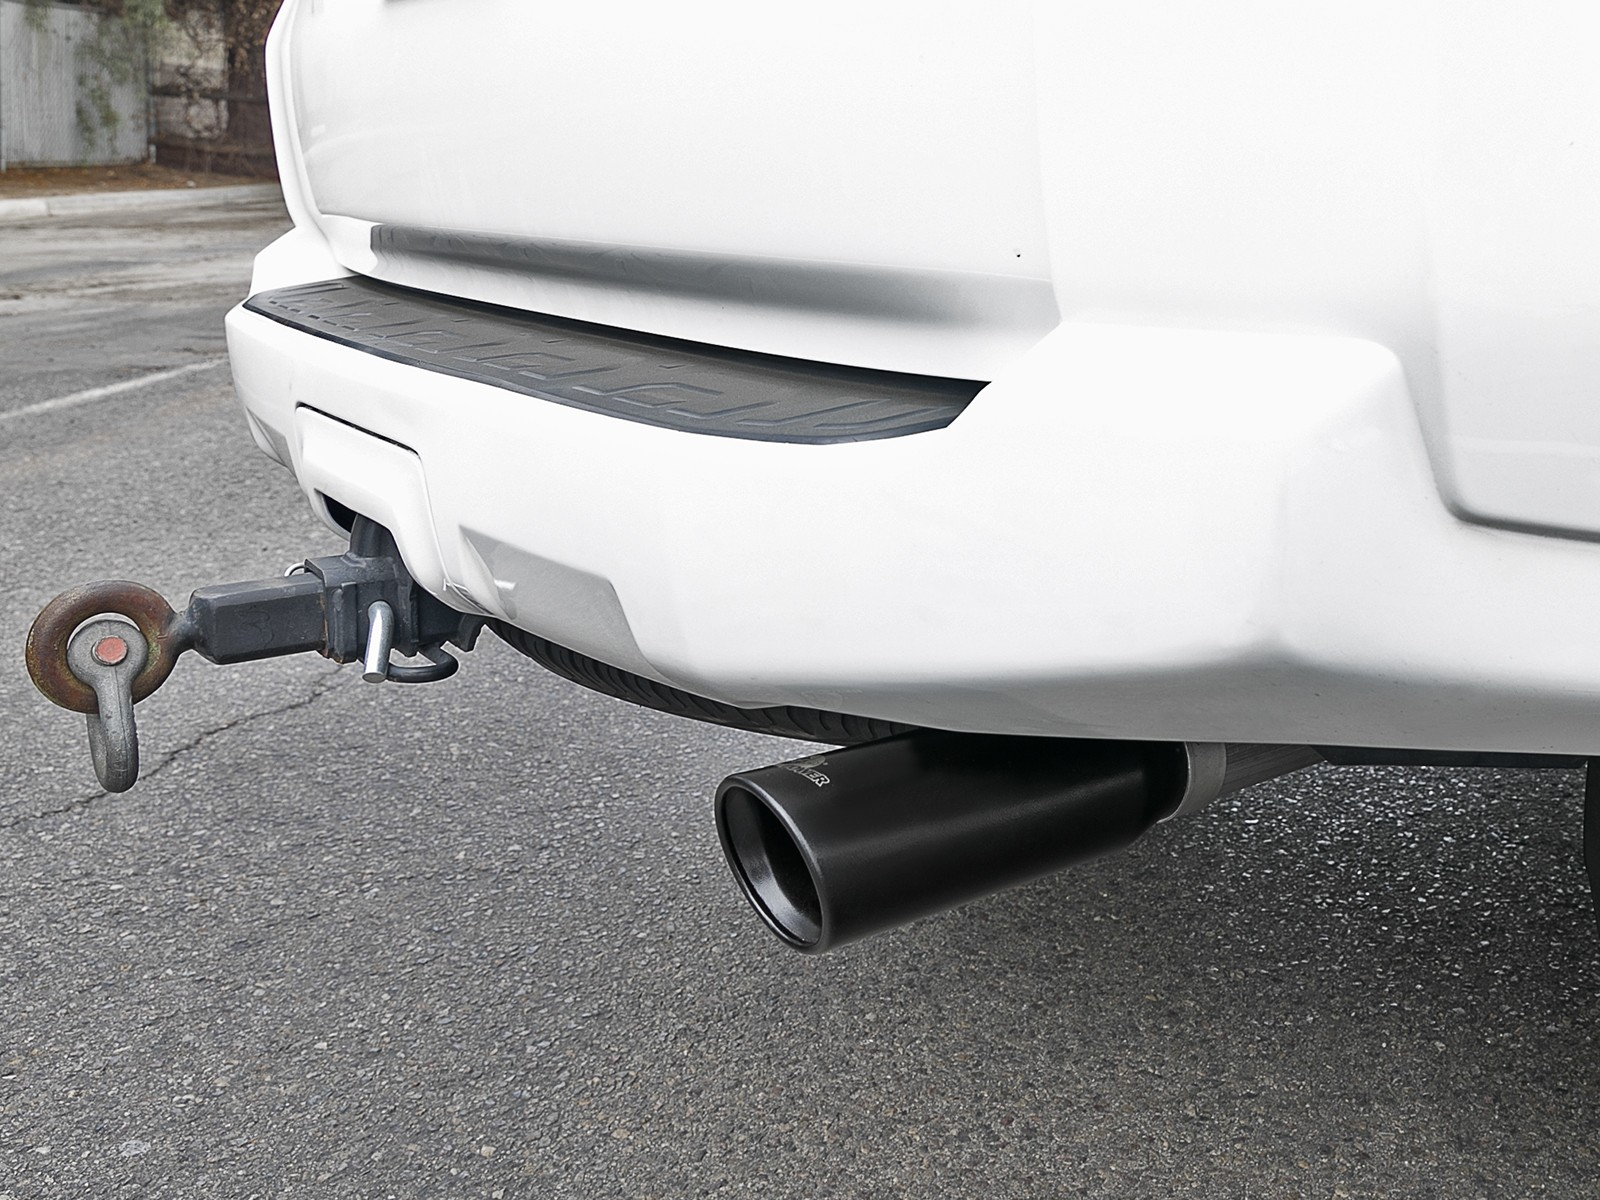 AFE MACH Force-Xp Stainless Steel Exhaust System 2010-2018 - BLACK TIP